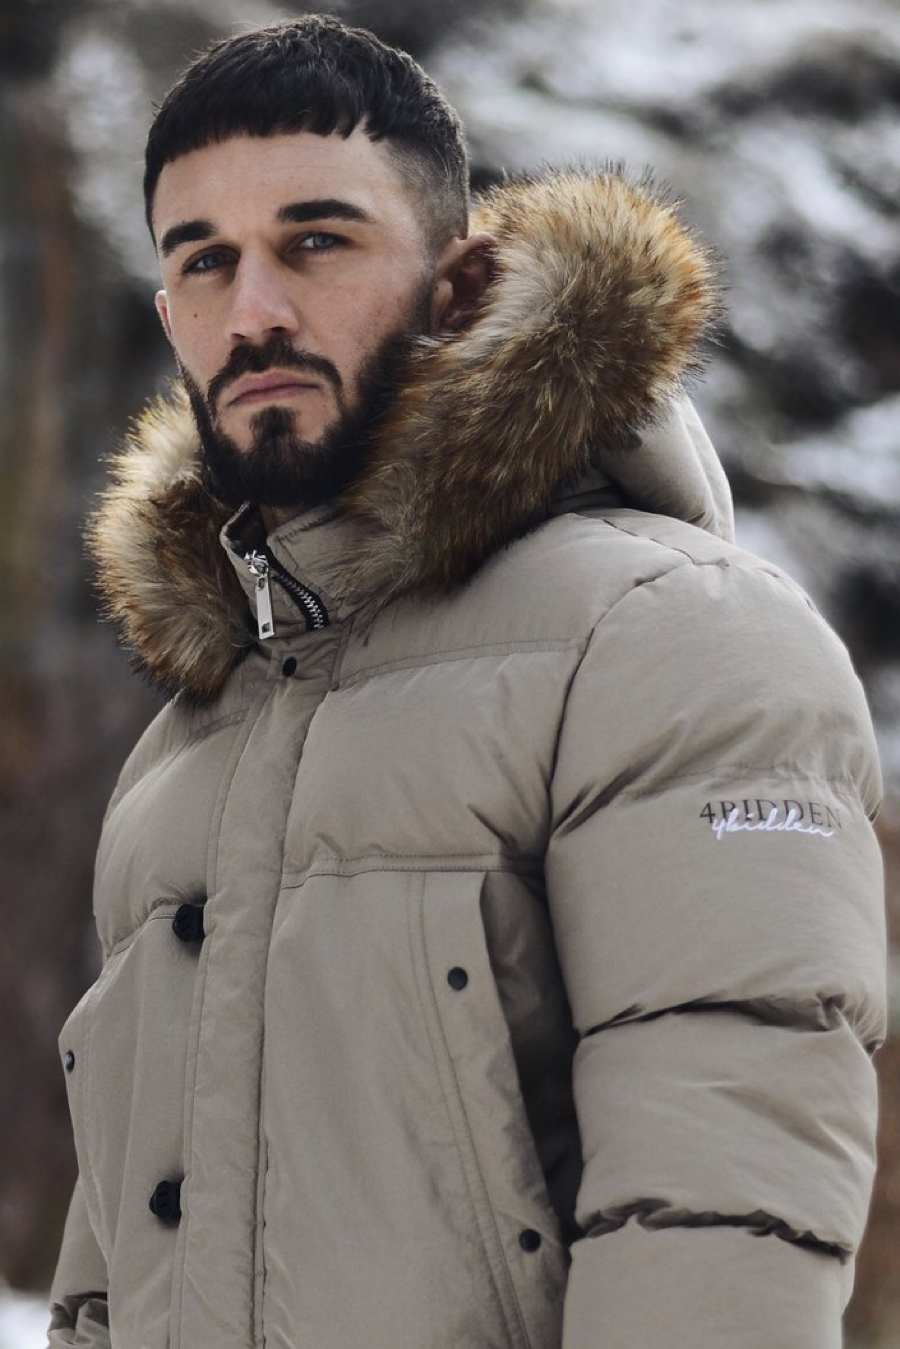 4BIDDEN Precision Fur Hood Parka Jacket - Grey - 2